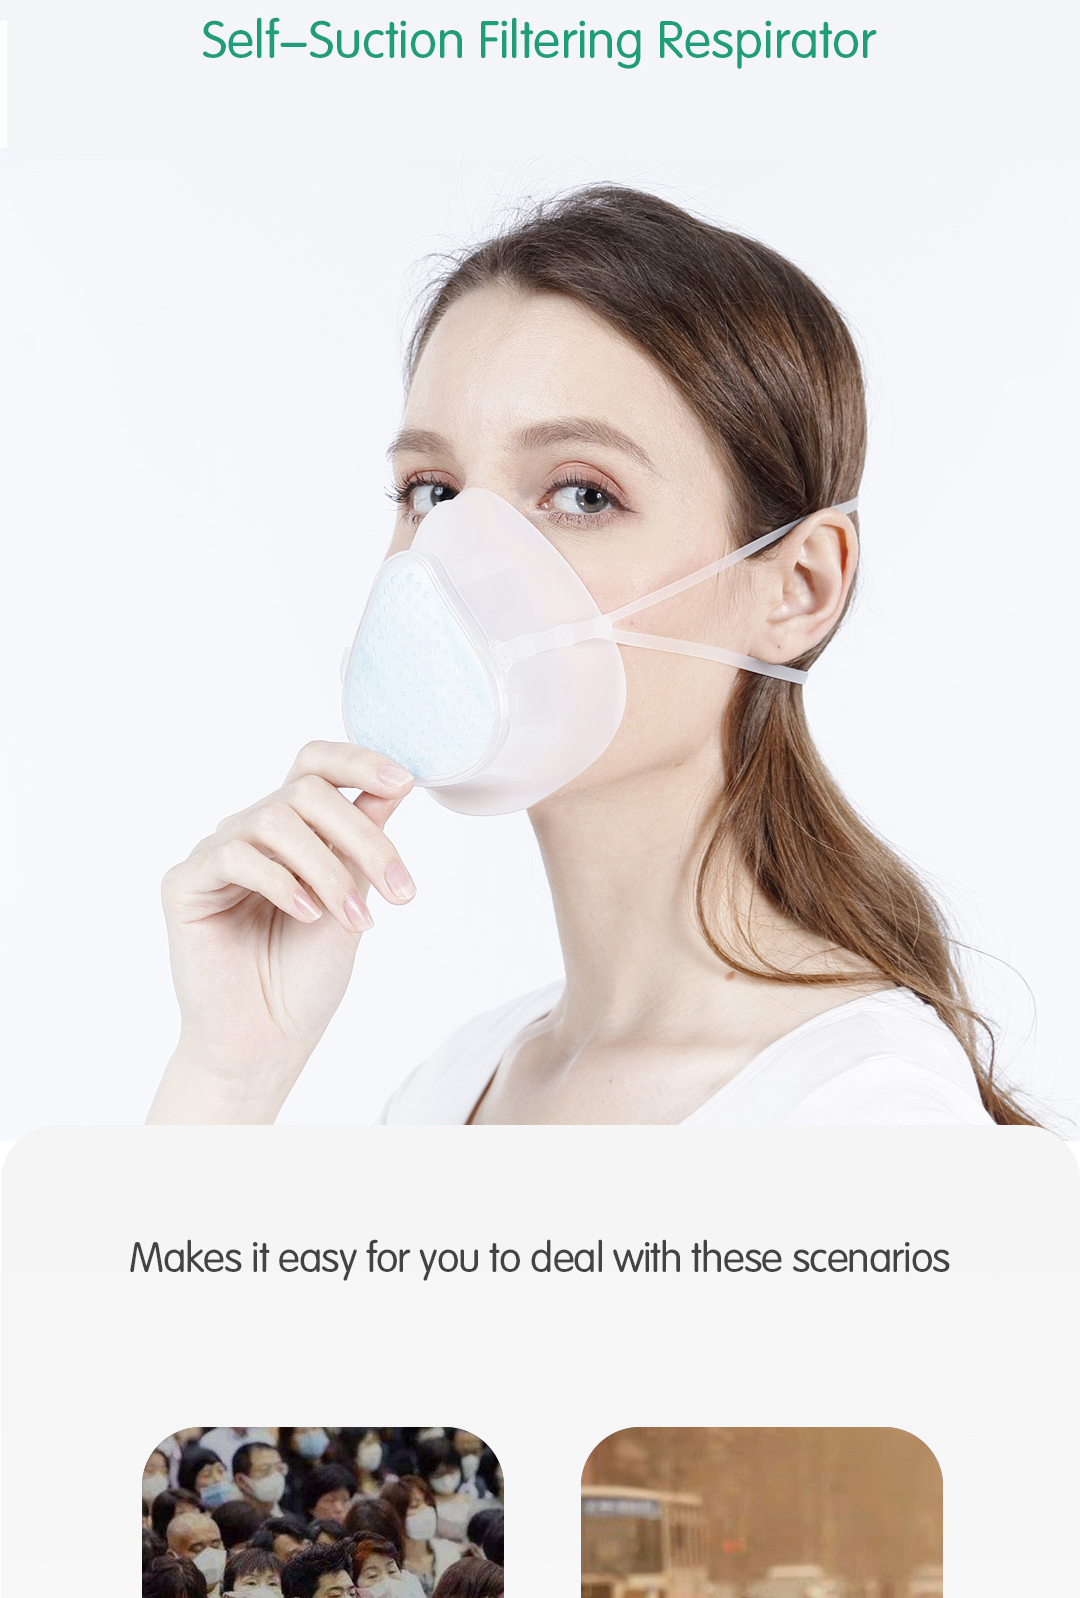 Replaceable Silicone Mask Filter Cotton Pads KingCare S9 Self-suction Filtering Respirator N95 Filter Anti-fog Face Mask - KingCare | KingCare.net